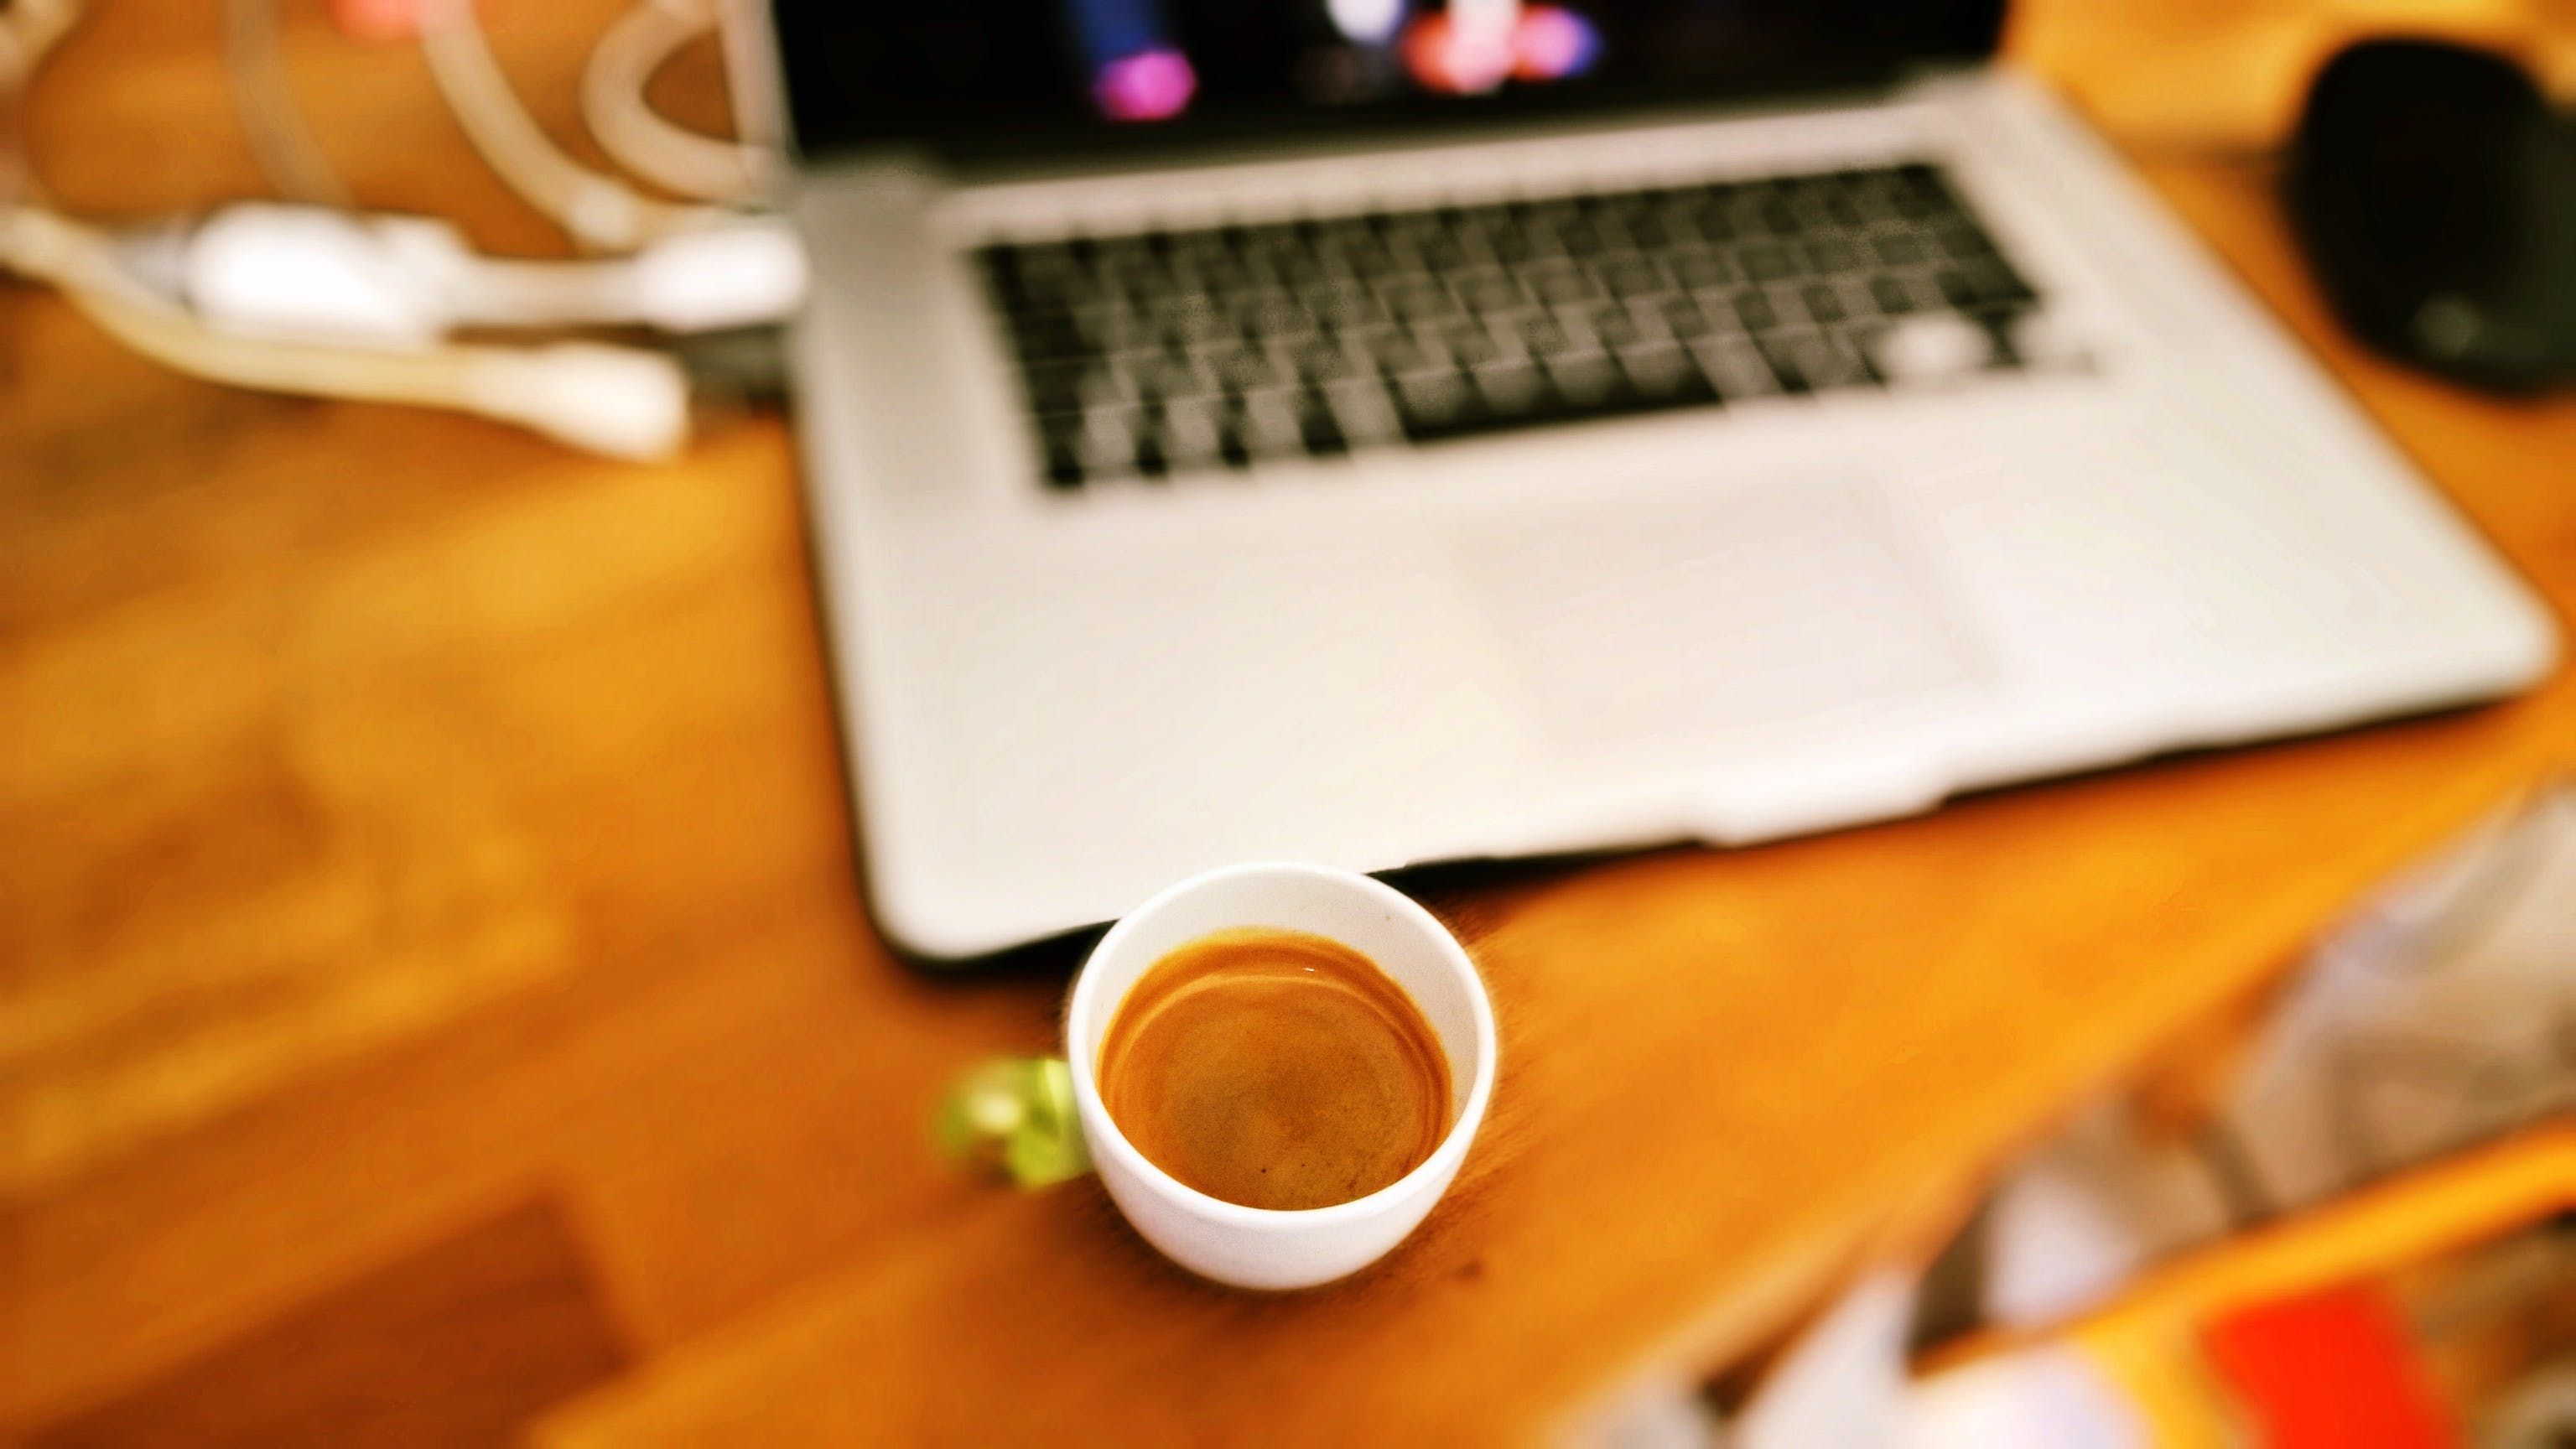 Free stock photo of coffee, working